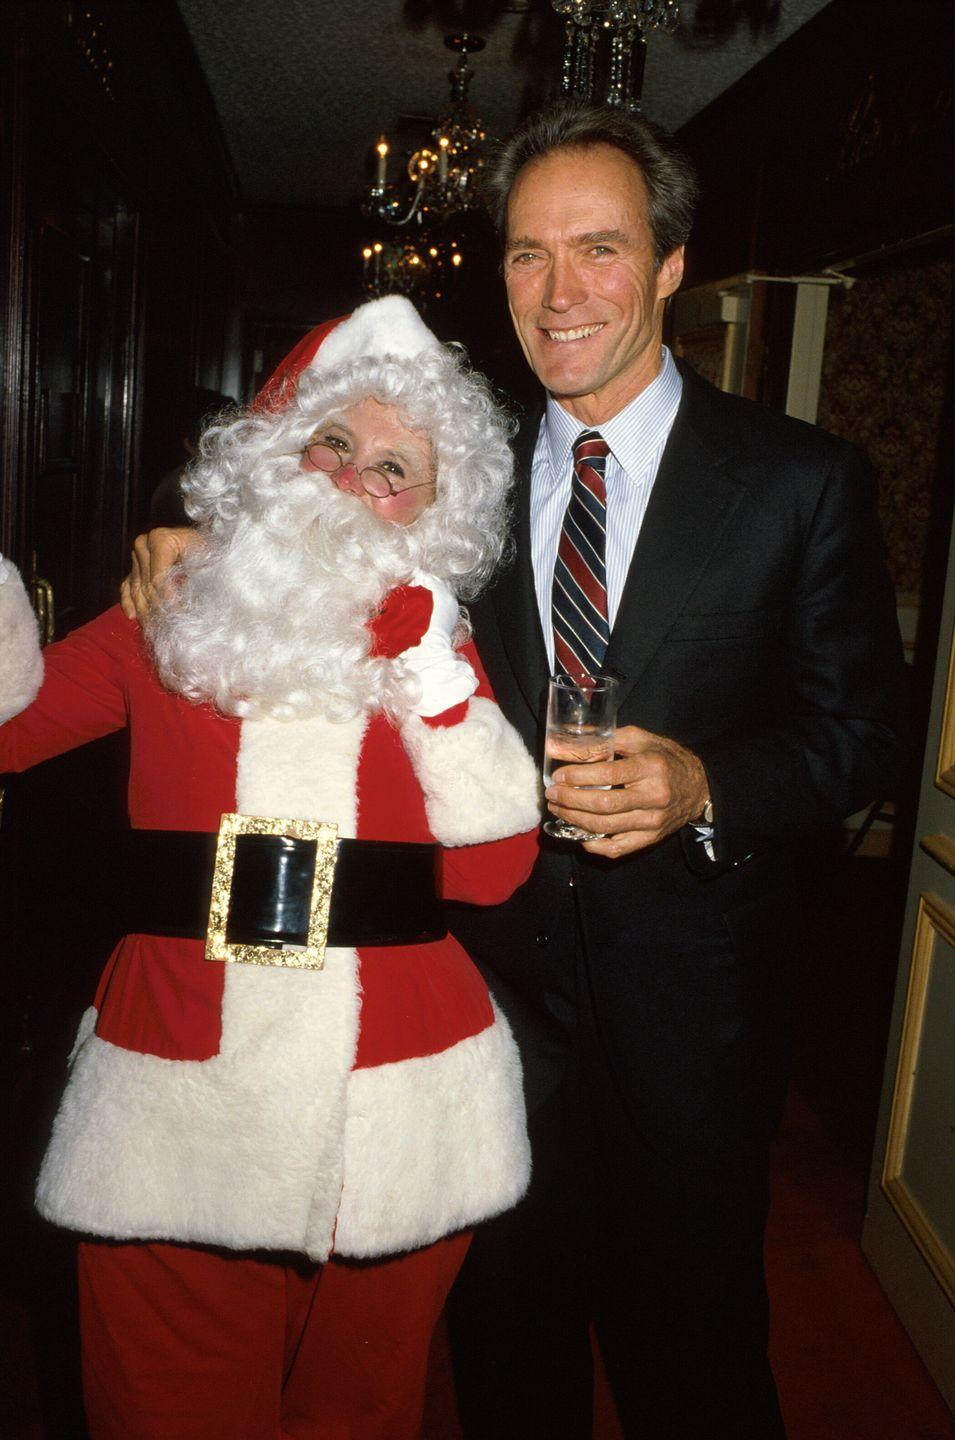 <p>While attending a Christmas party in Los Angeles, Clint Eastwood posed for a photo with Santa (comedian Dinah Shore) and rocked a red, gold and navy tie. </p>